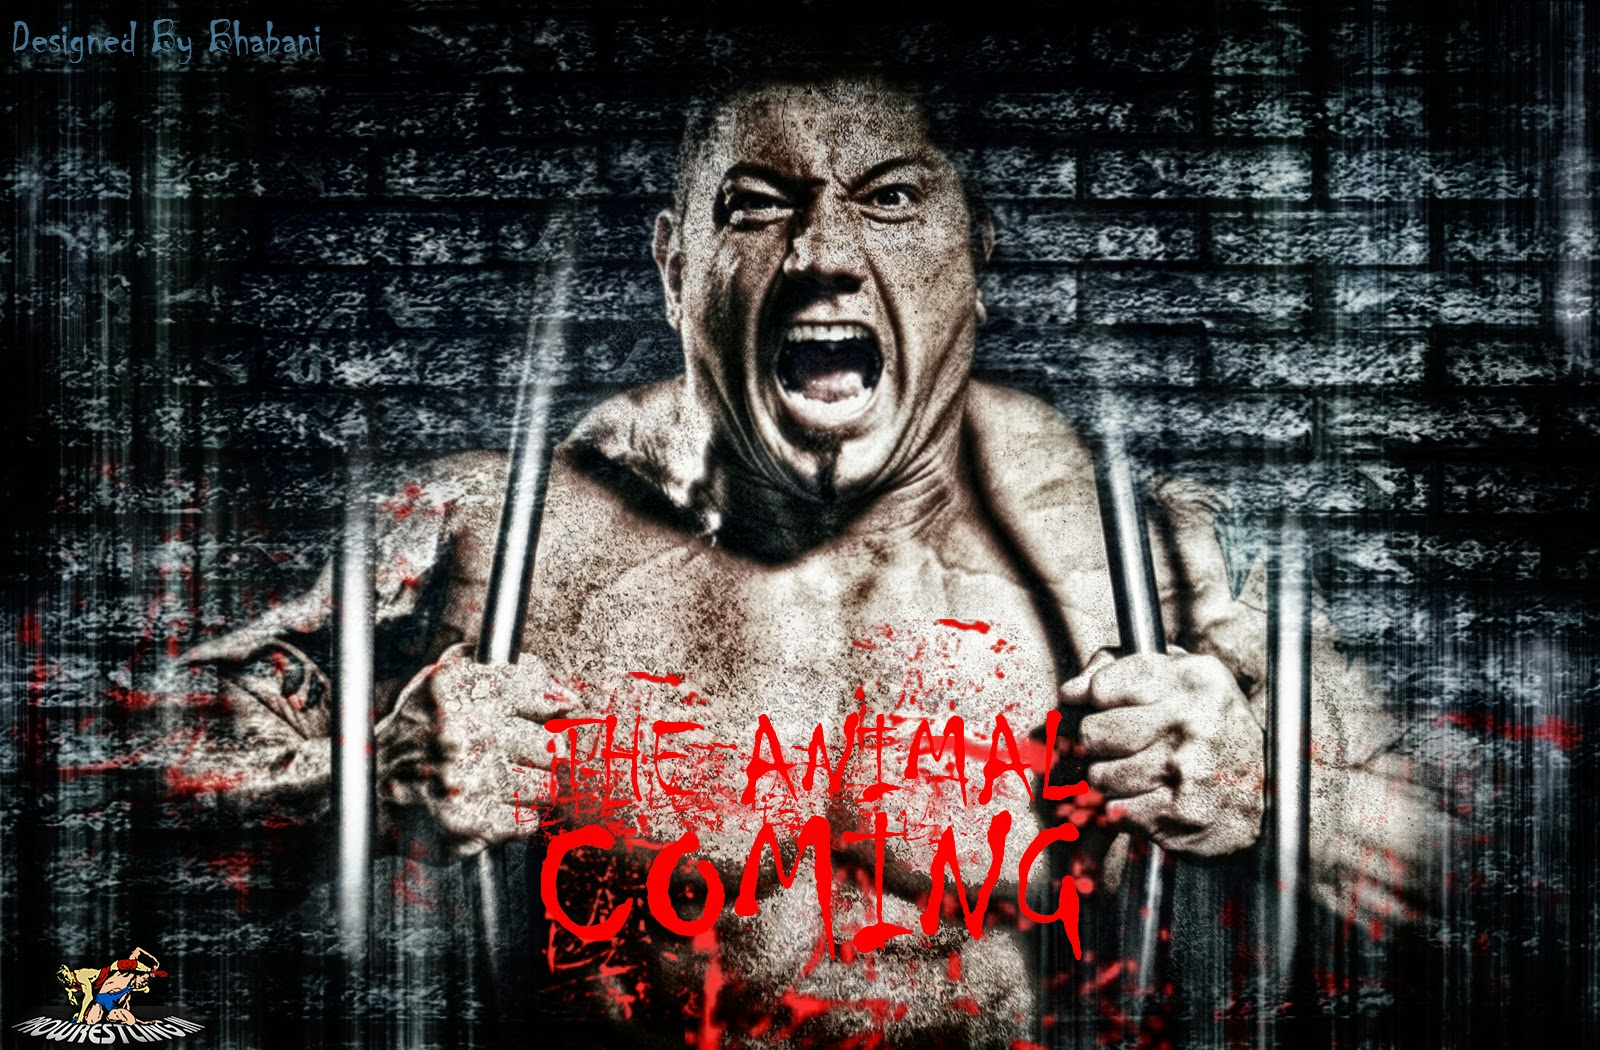 "Download » Batista 2014 Return ""The Animal Coming"" HQ Wallpaper - Designed By Bhabani (+ 3D)"